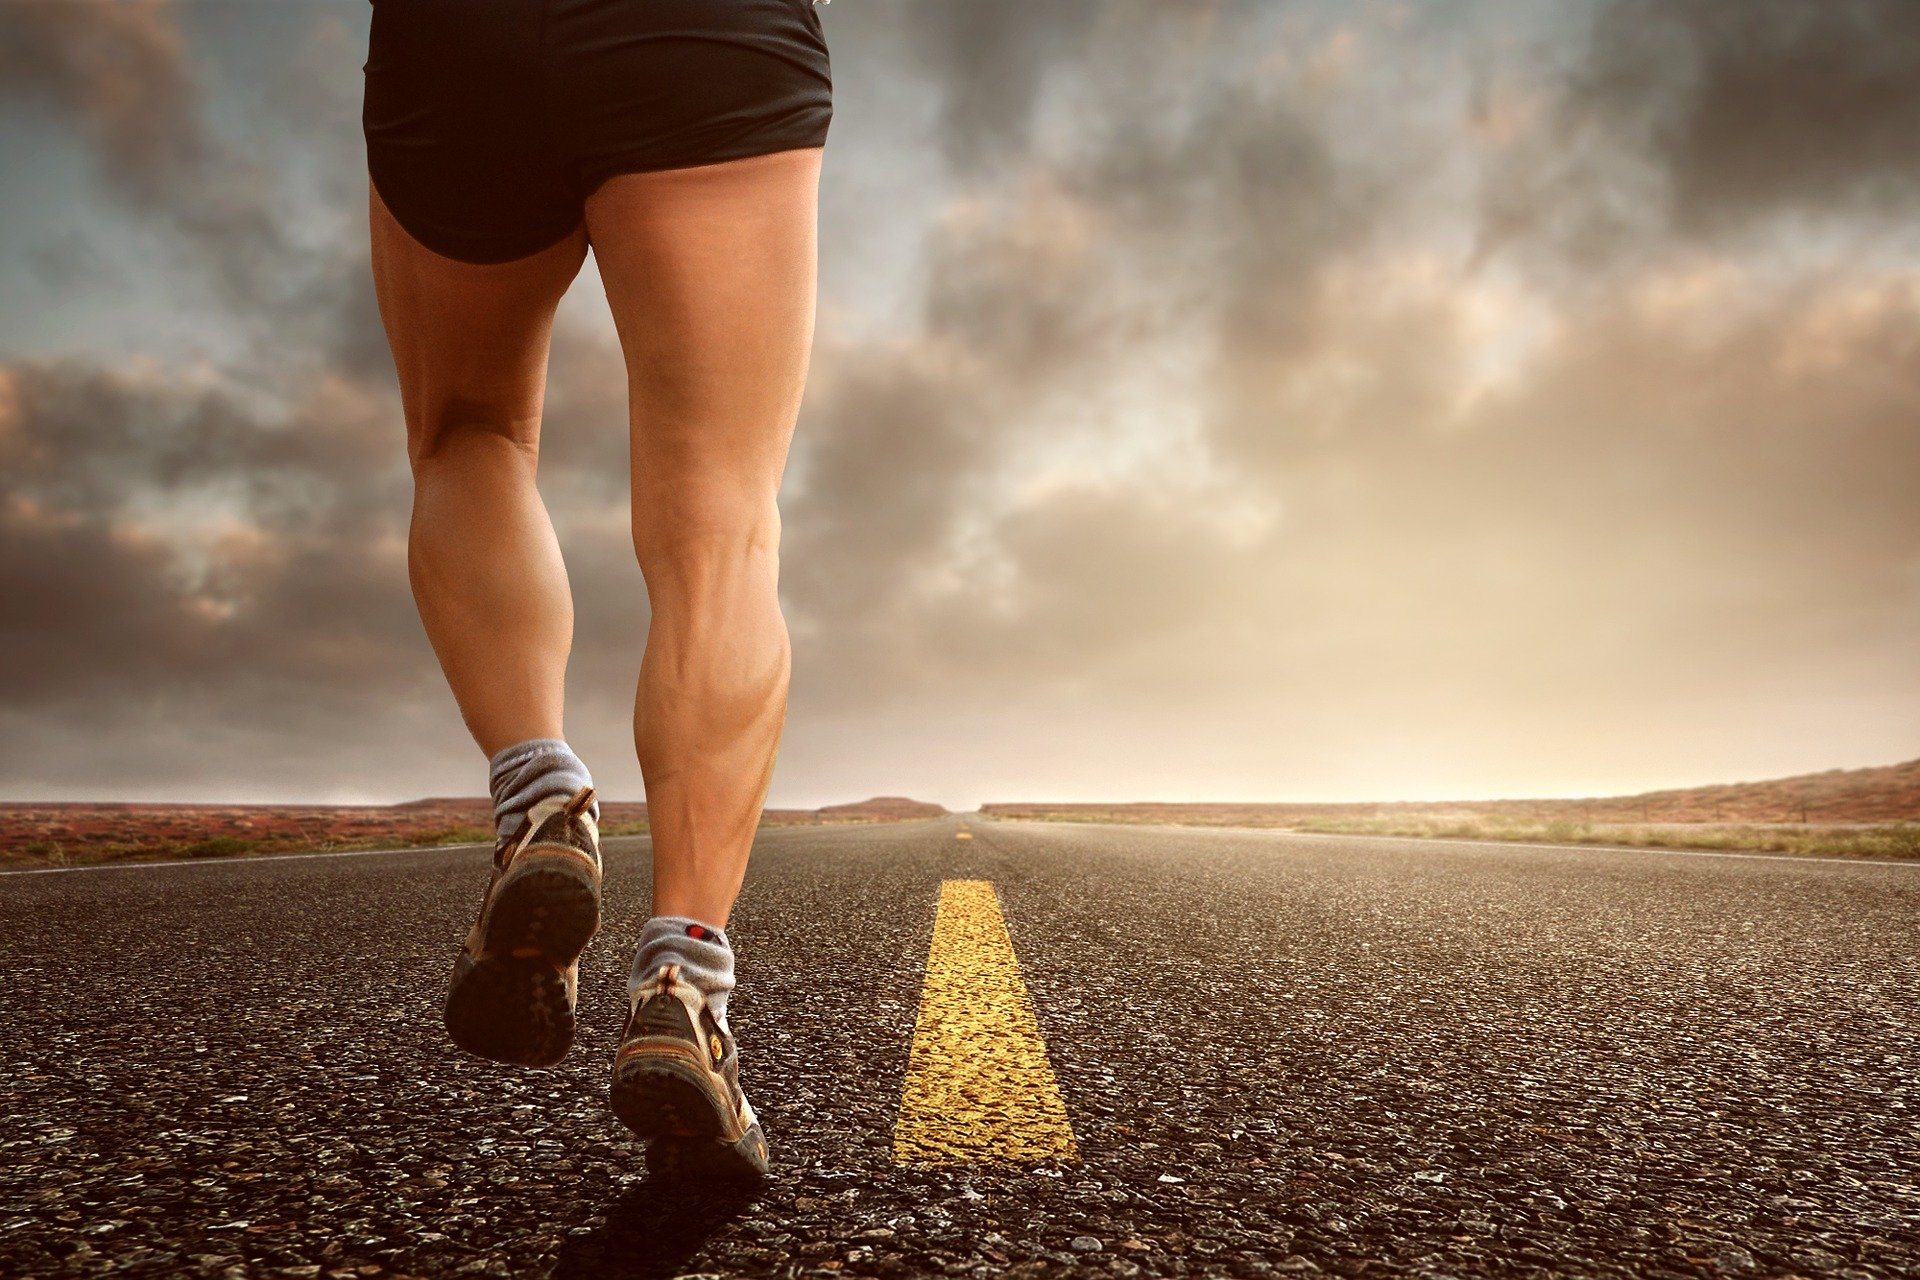 The Joy And Benefits Of Running, As Told By Dr. Mark Lassise, Board Certified Neurologist and Psychiatrist